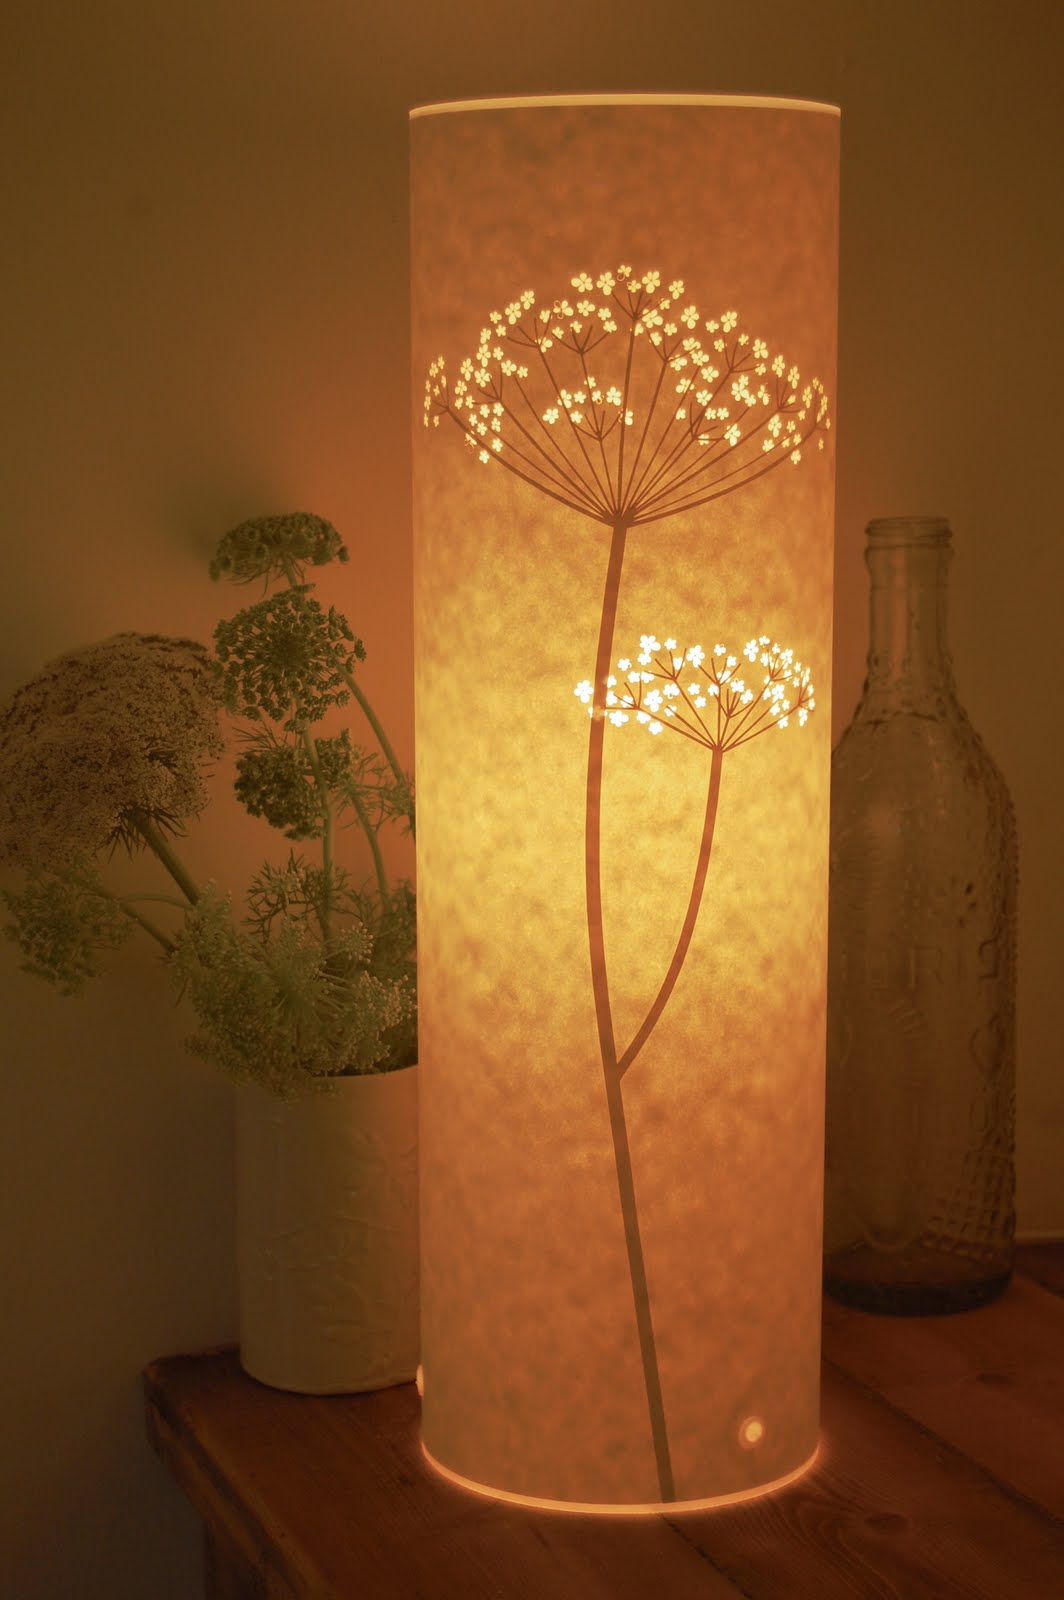 Hannah Nunn Lamps Are Exquisite In Design And Beautiful In Form, Simple And  Atmospheric. I Love Hannahu0027s Lamps, And With New Designs Coming U2013 There Is  ...